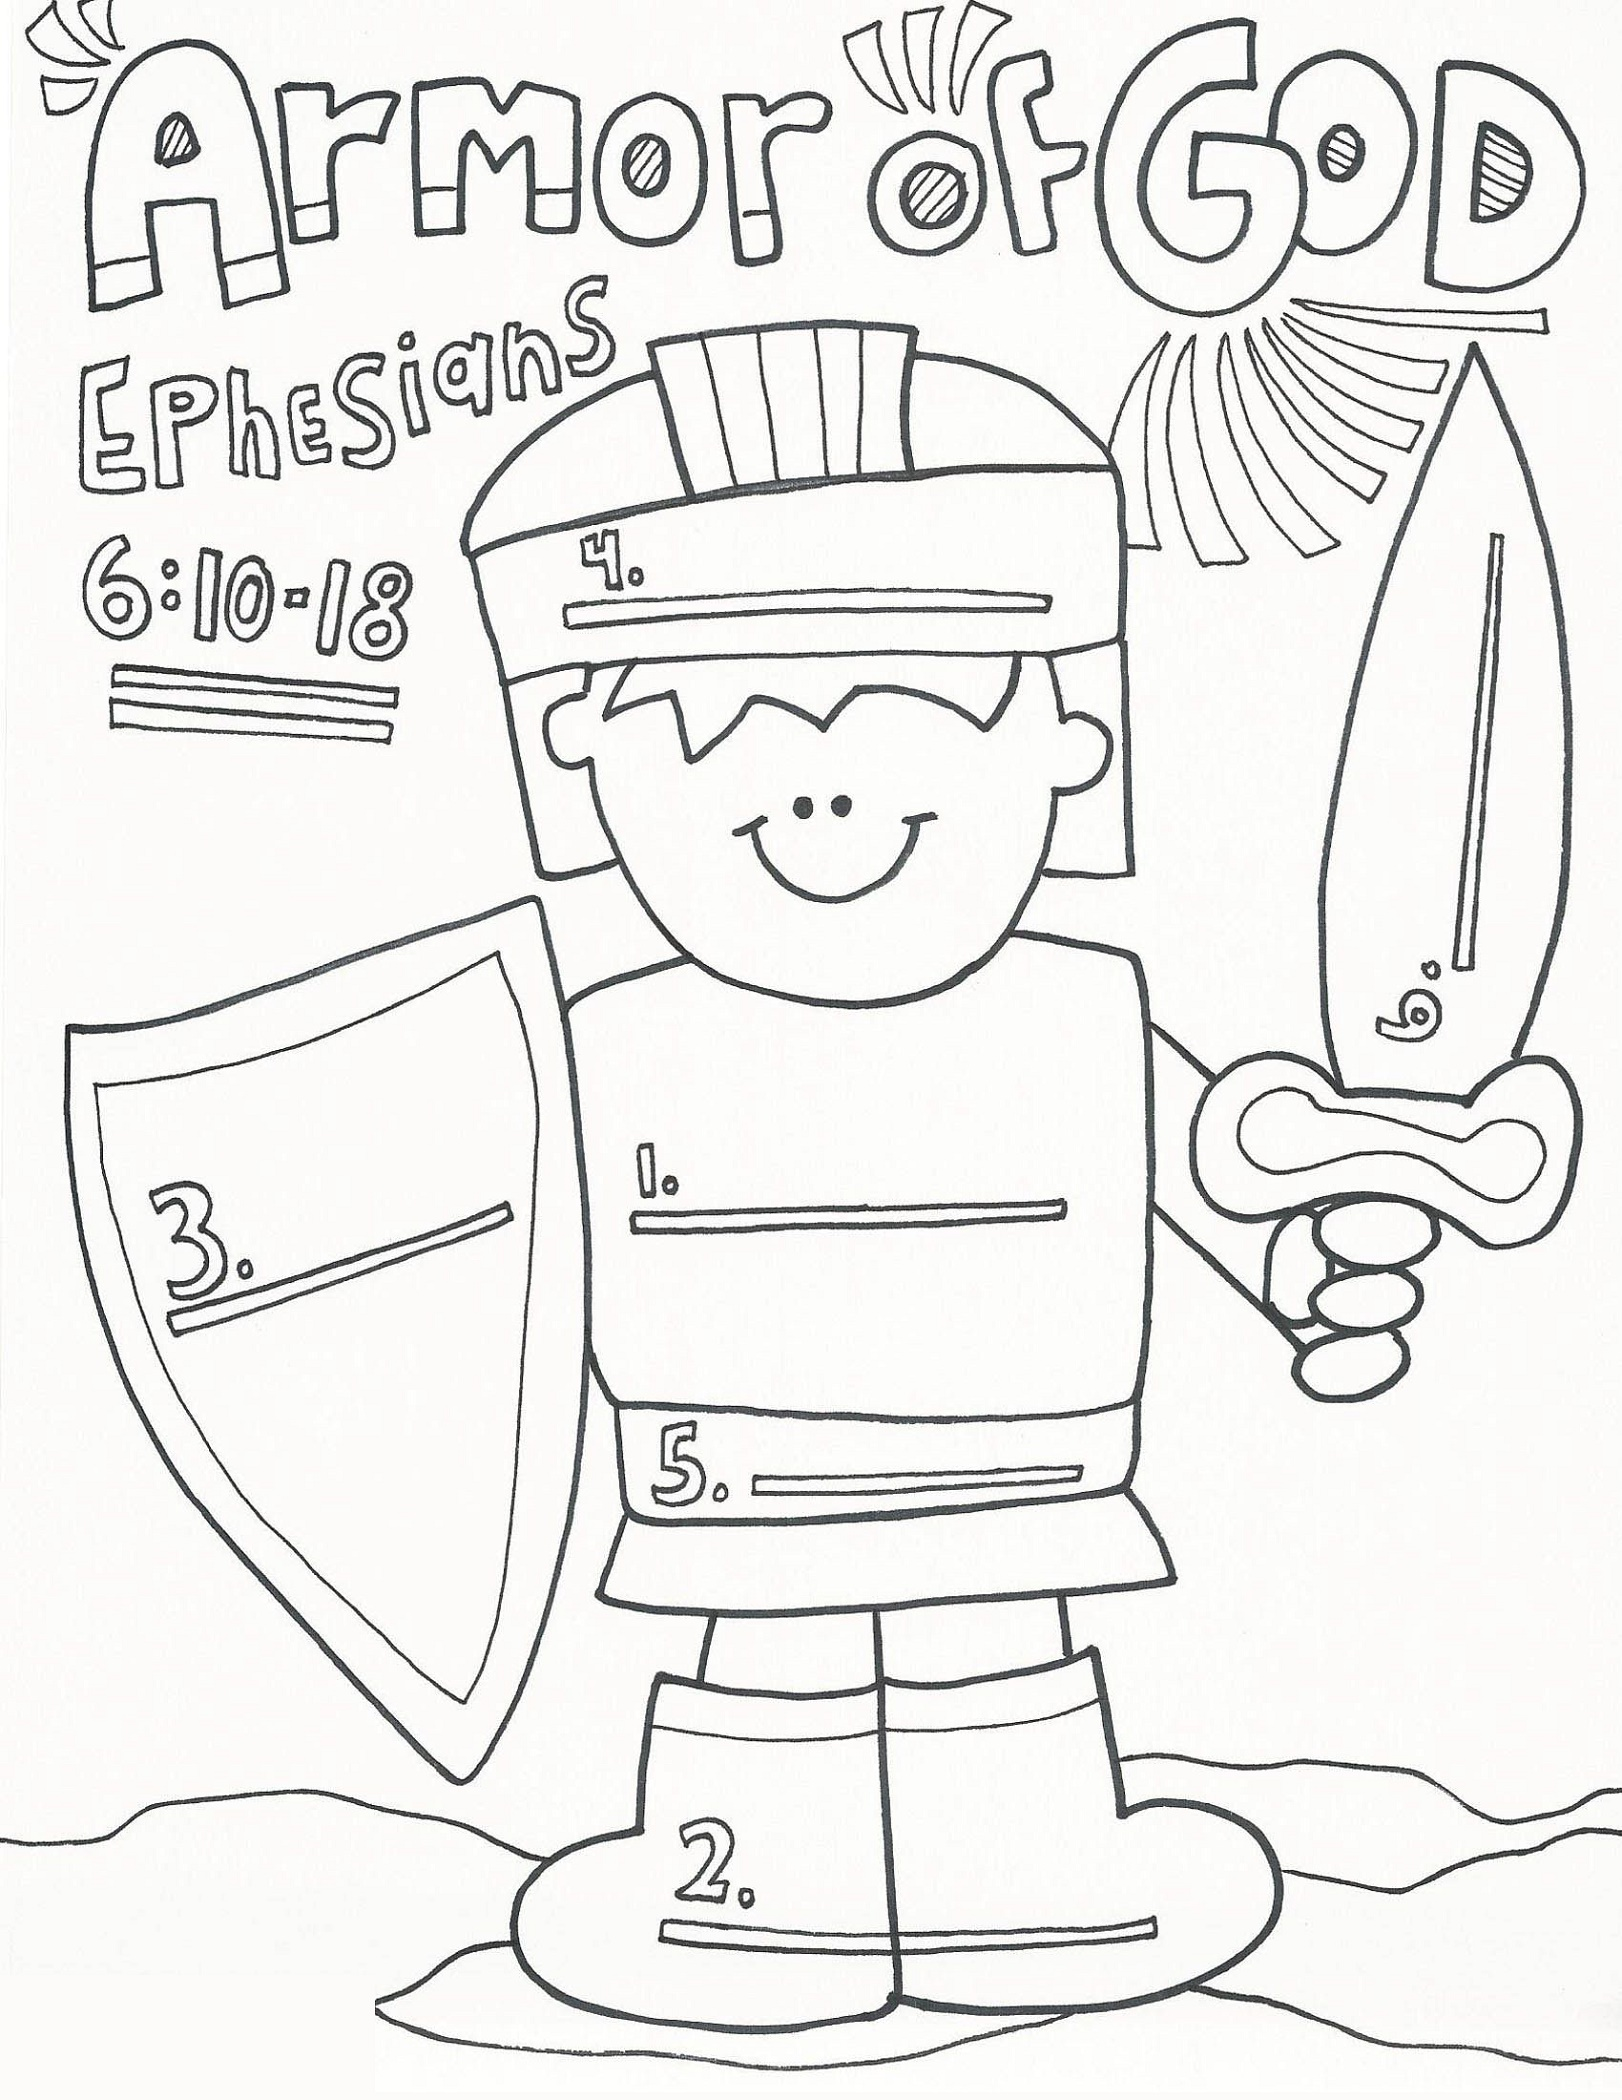 Armor Of God Coloring Pages For Kids